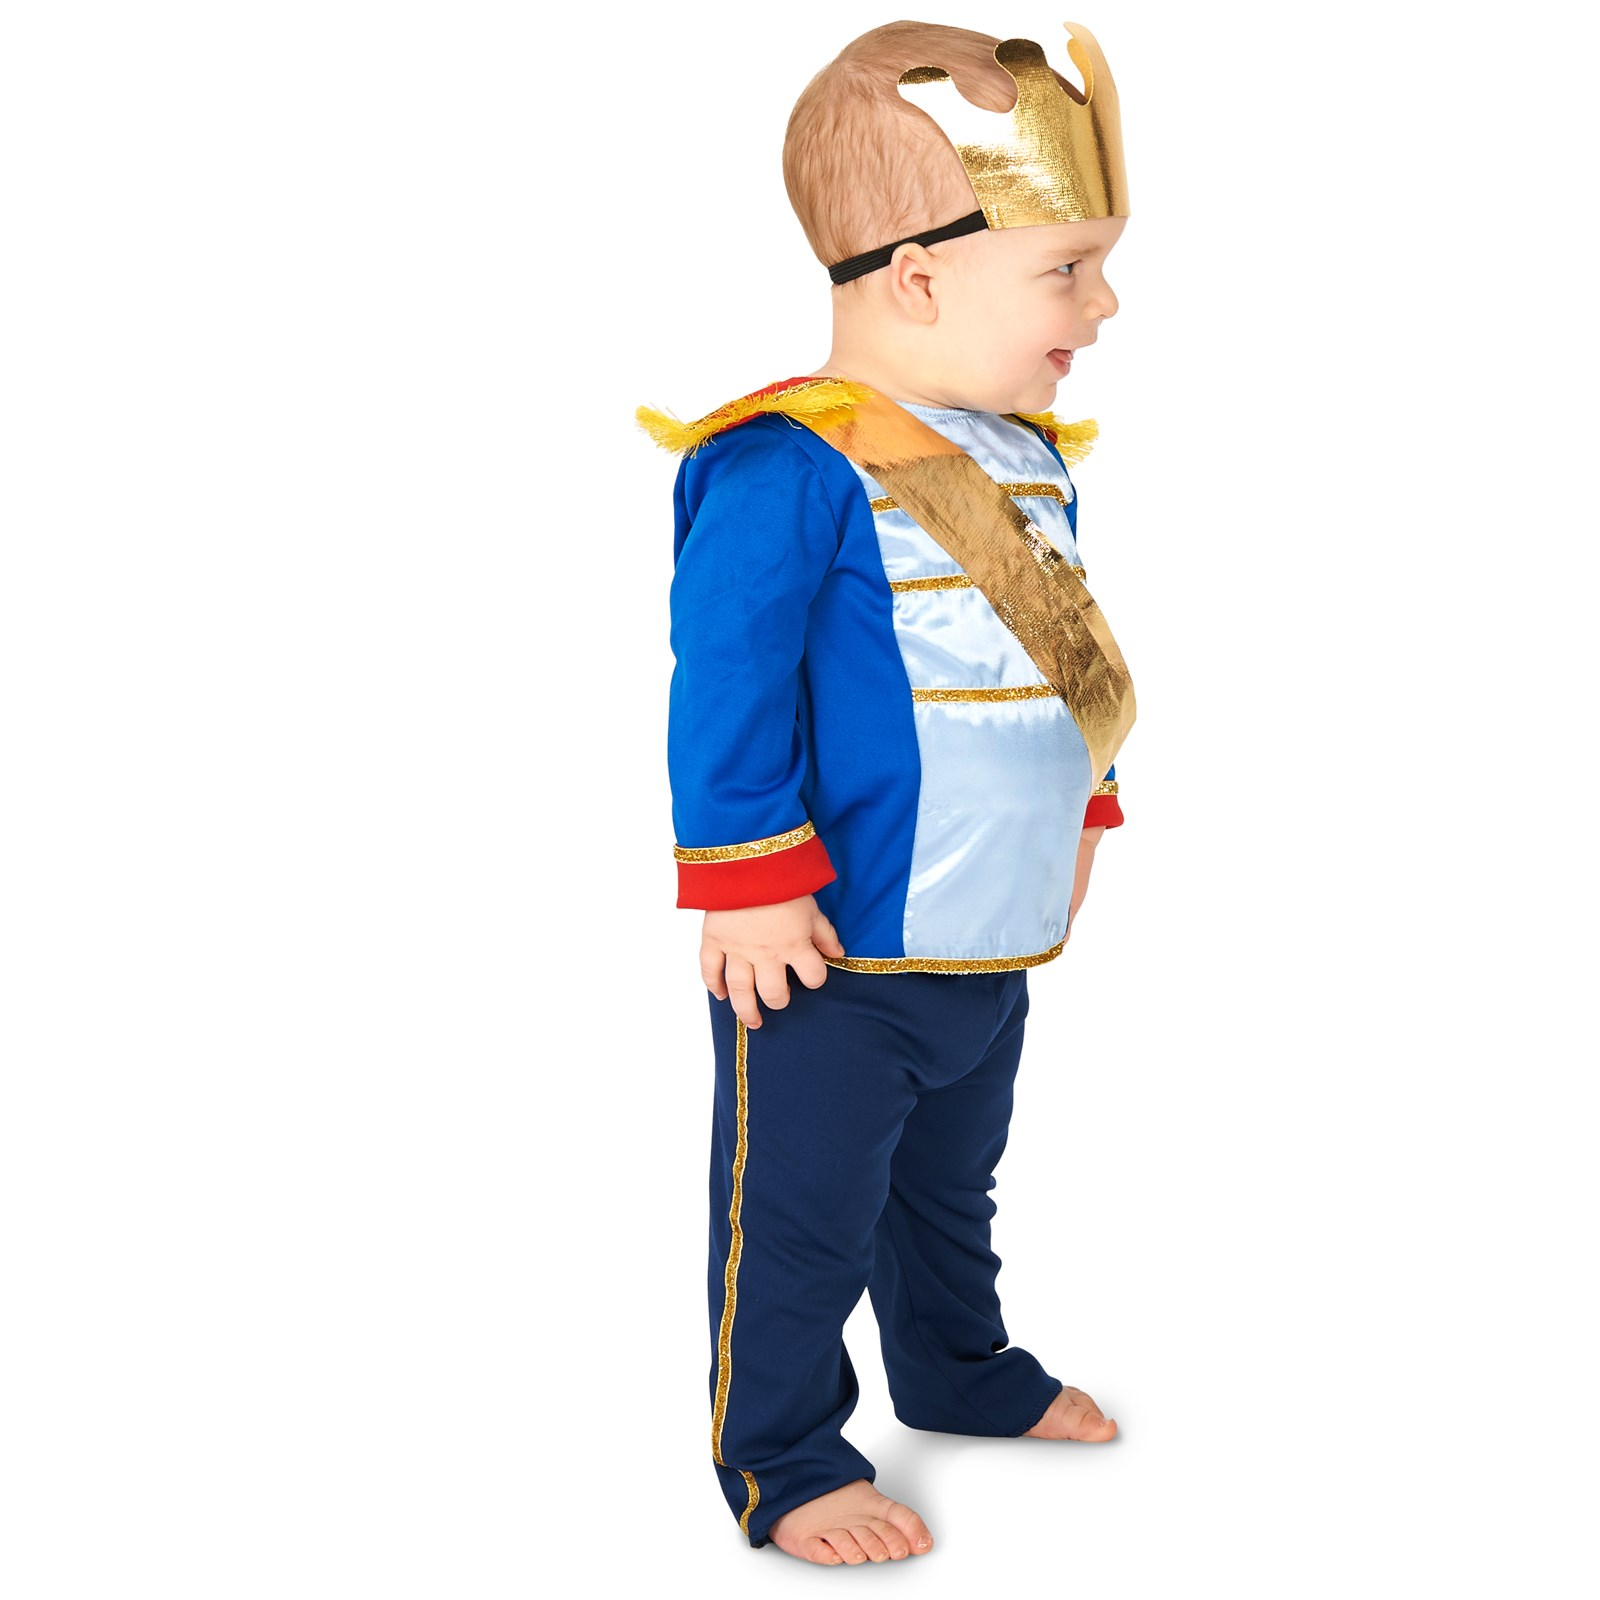 most charming prince infant costume buycostumes